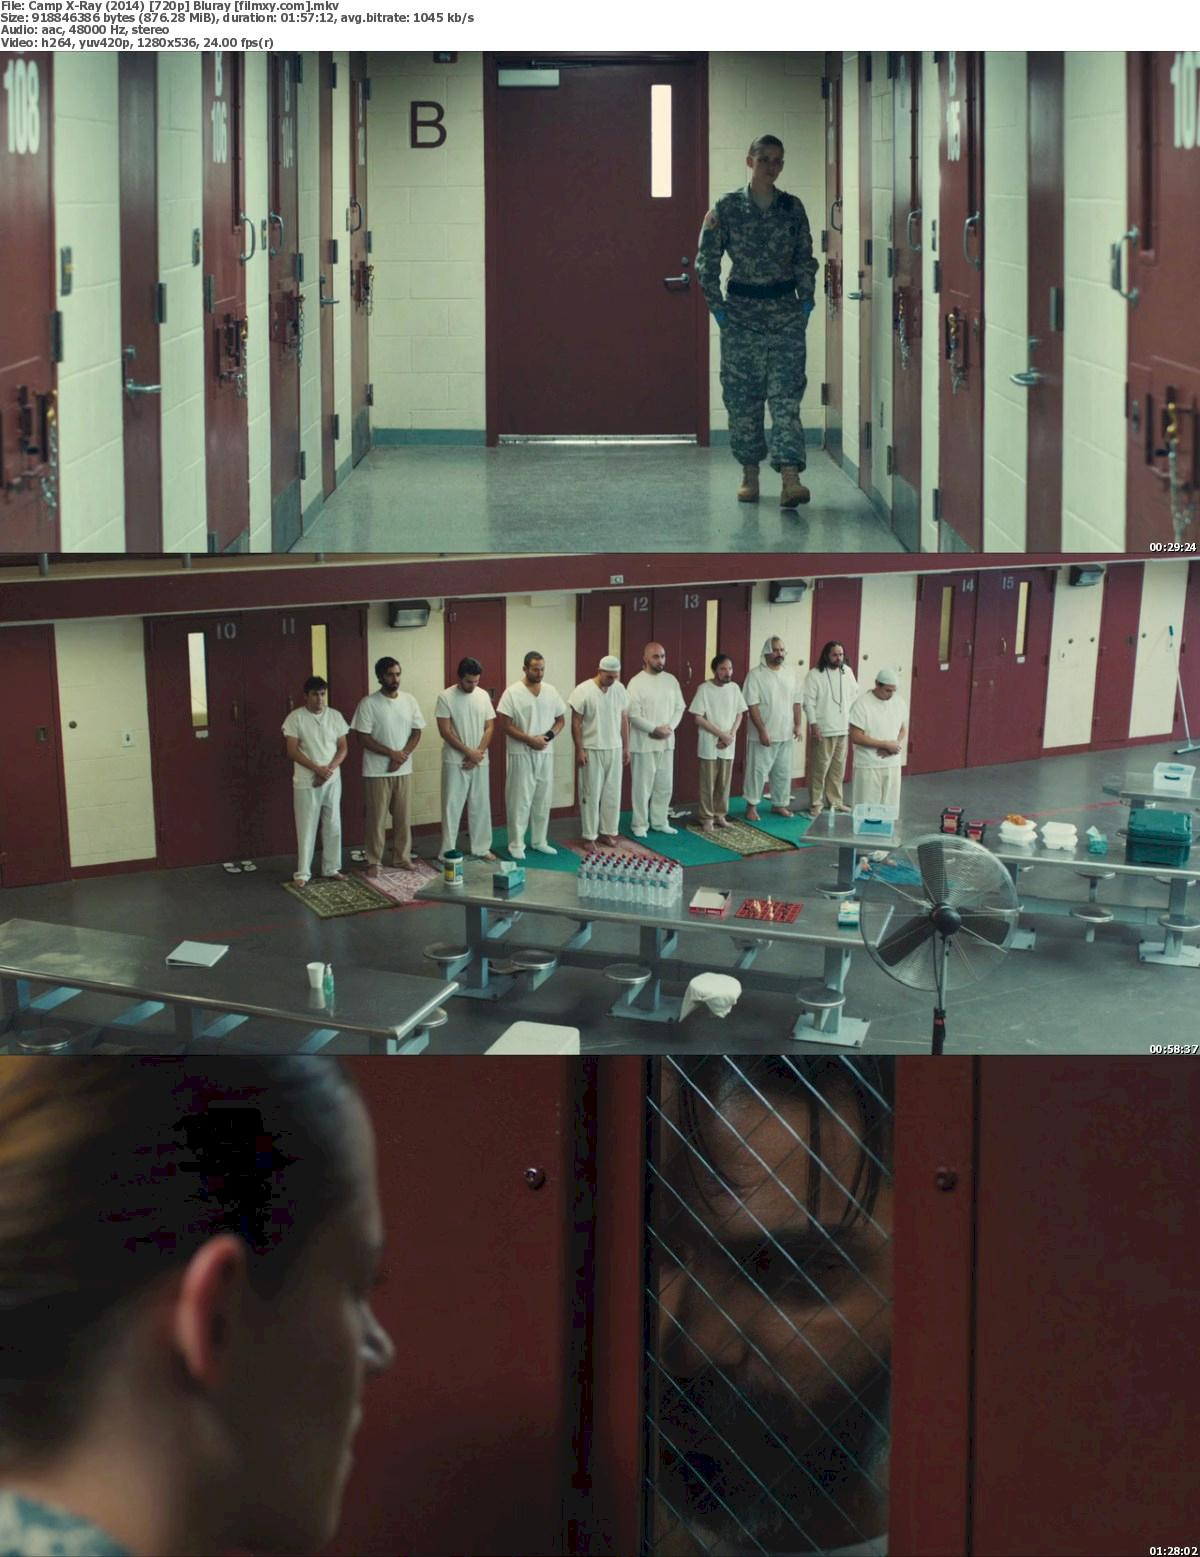 Camp X-Ray (2014) 720p & 1080p Bluray Free Download 720p Screenshot